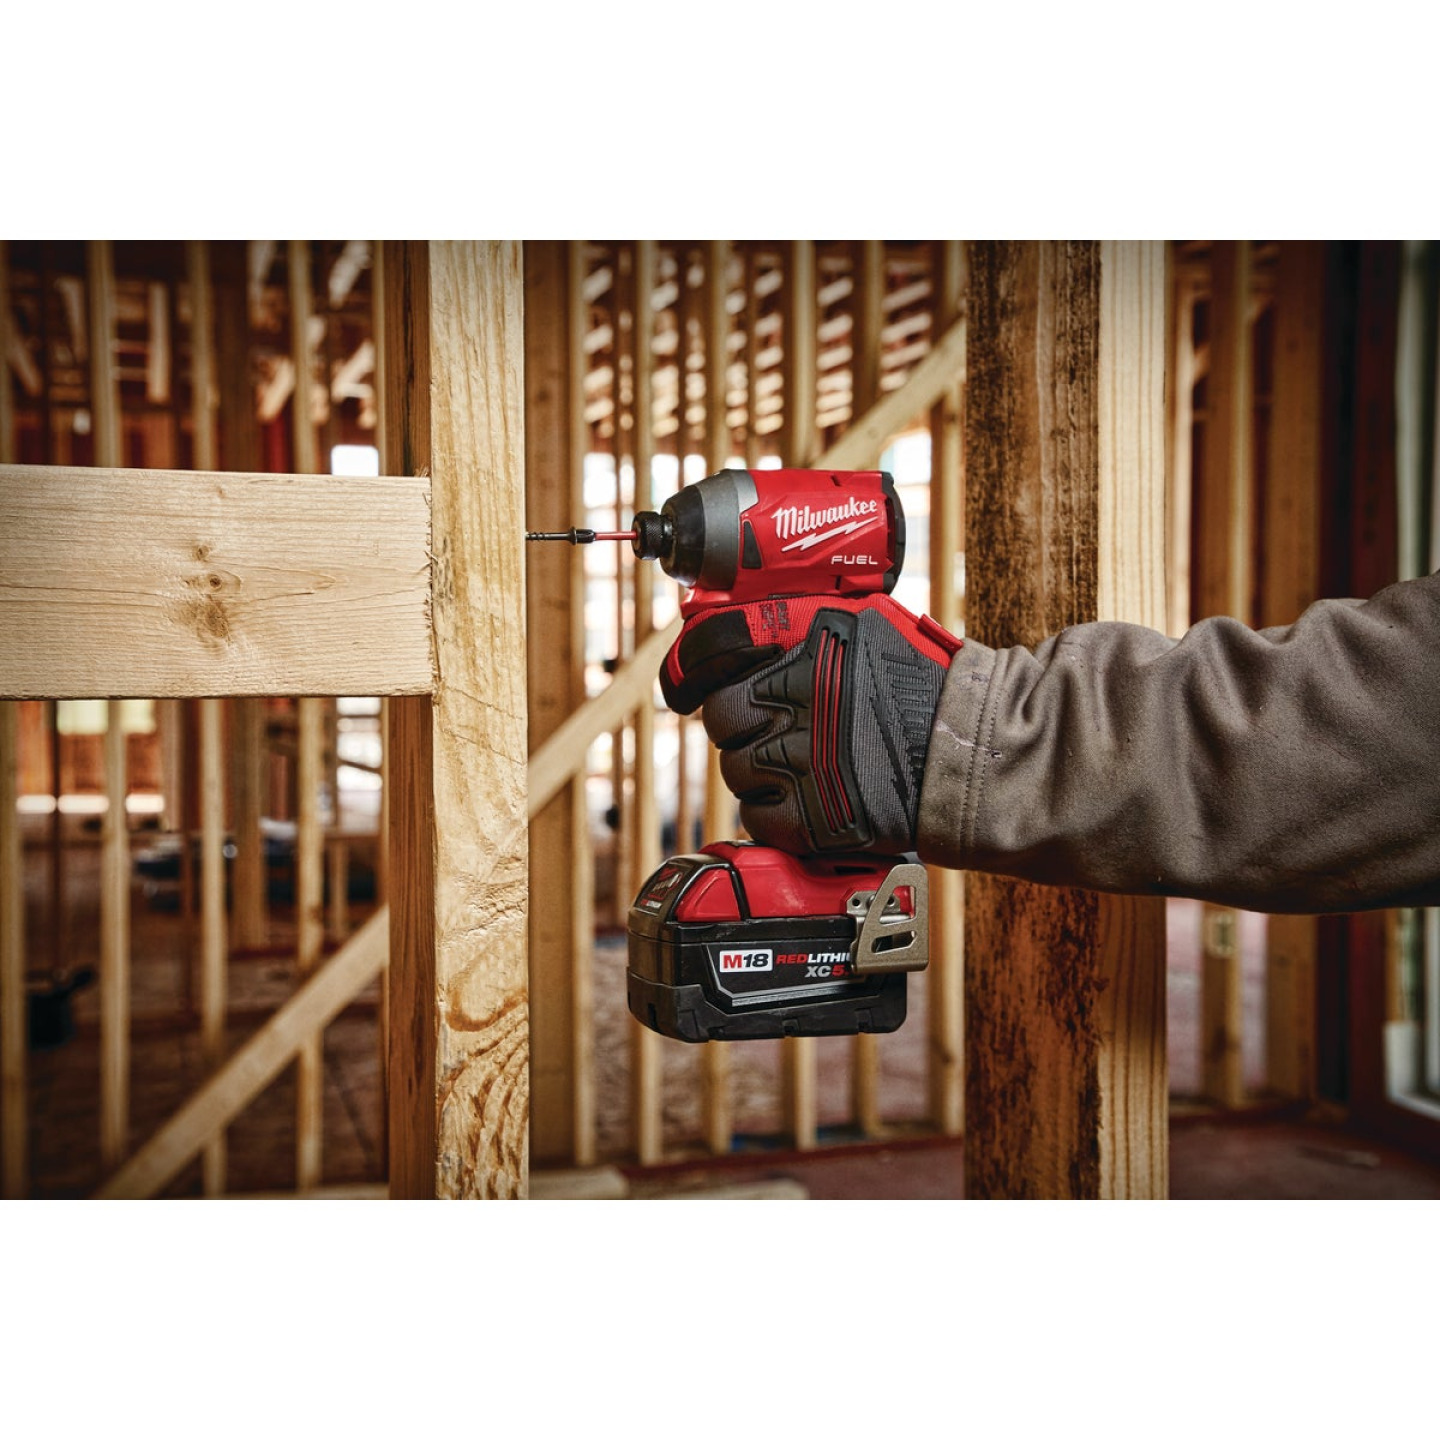 Milwaukee M18 FUEL 18 Volt Lithium-Ion Brushless 1/4 In. Hex Impact Driver (Bare Tool) Image 3